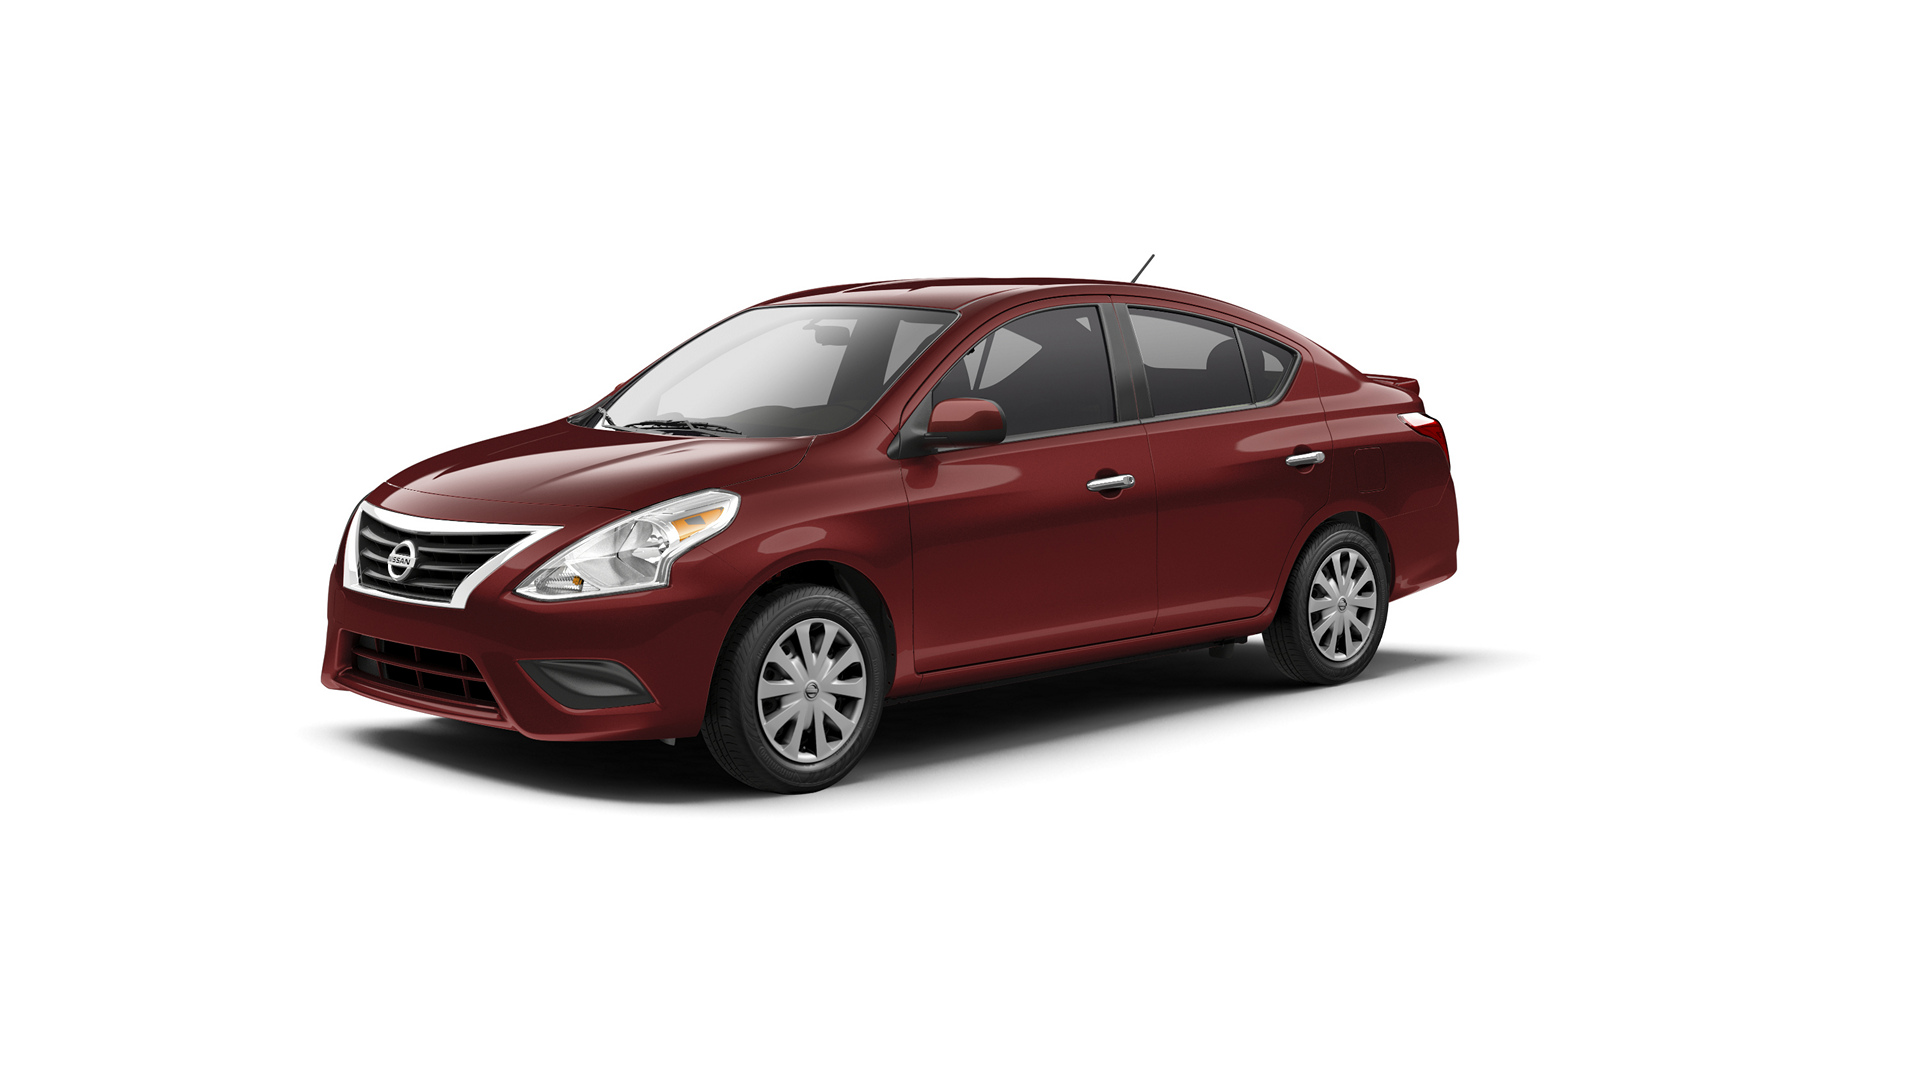 Images of Nissan Versa Sedan